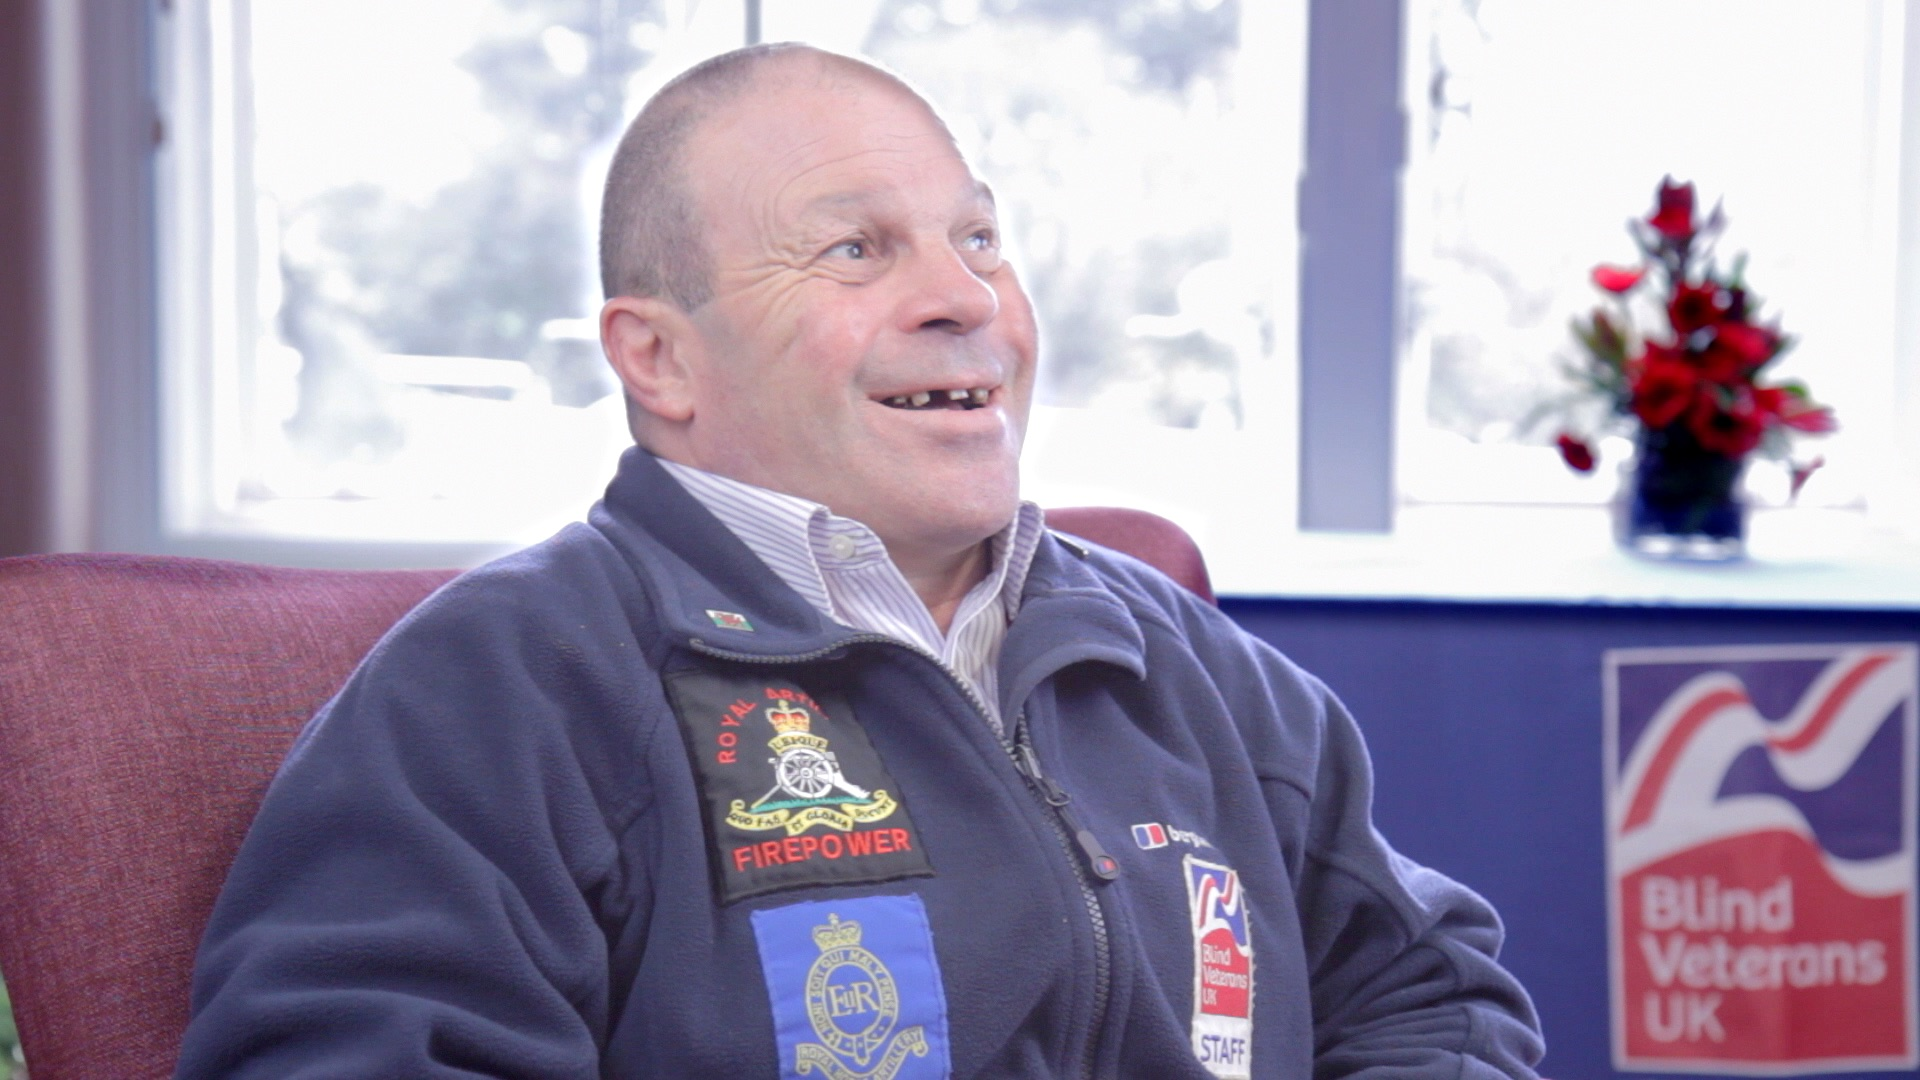 Blind Veterans UK member Billy Baxter